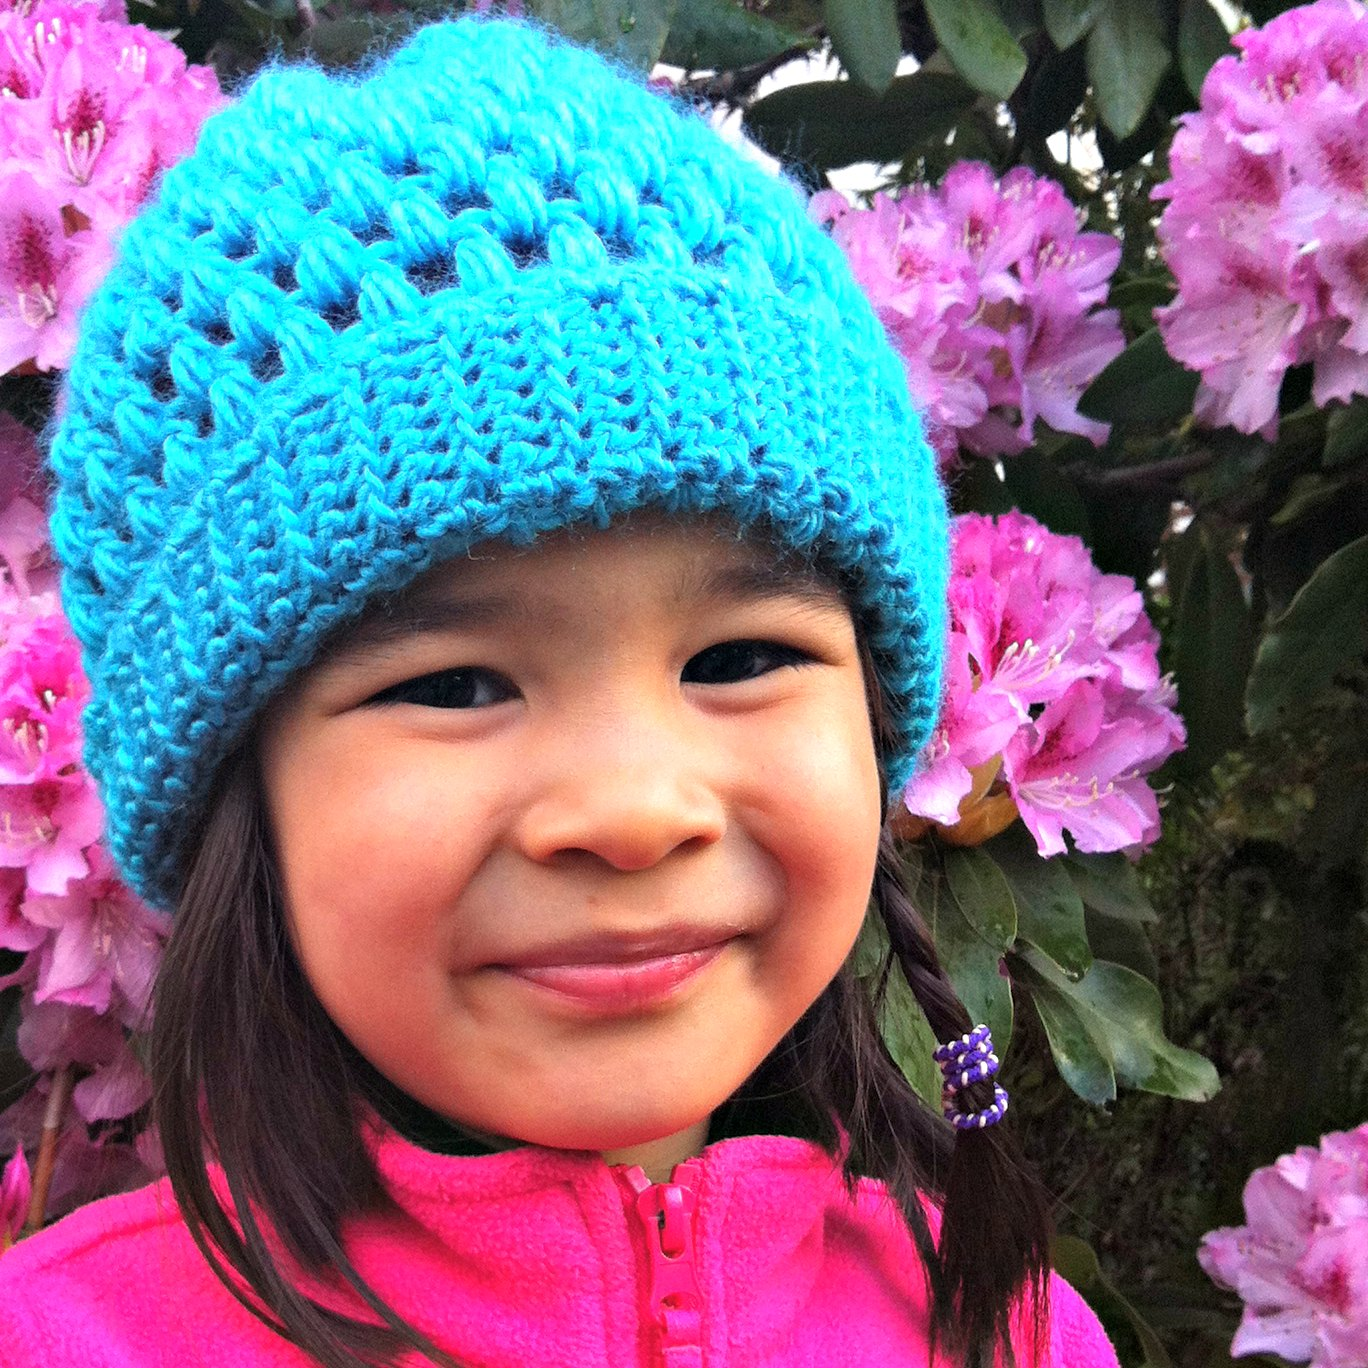 Crochet Slouchy Hat Pattern For Child : Sew Creative Crocheted Kids Slouch Hat Pattern- Great for ...